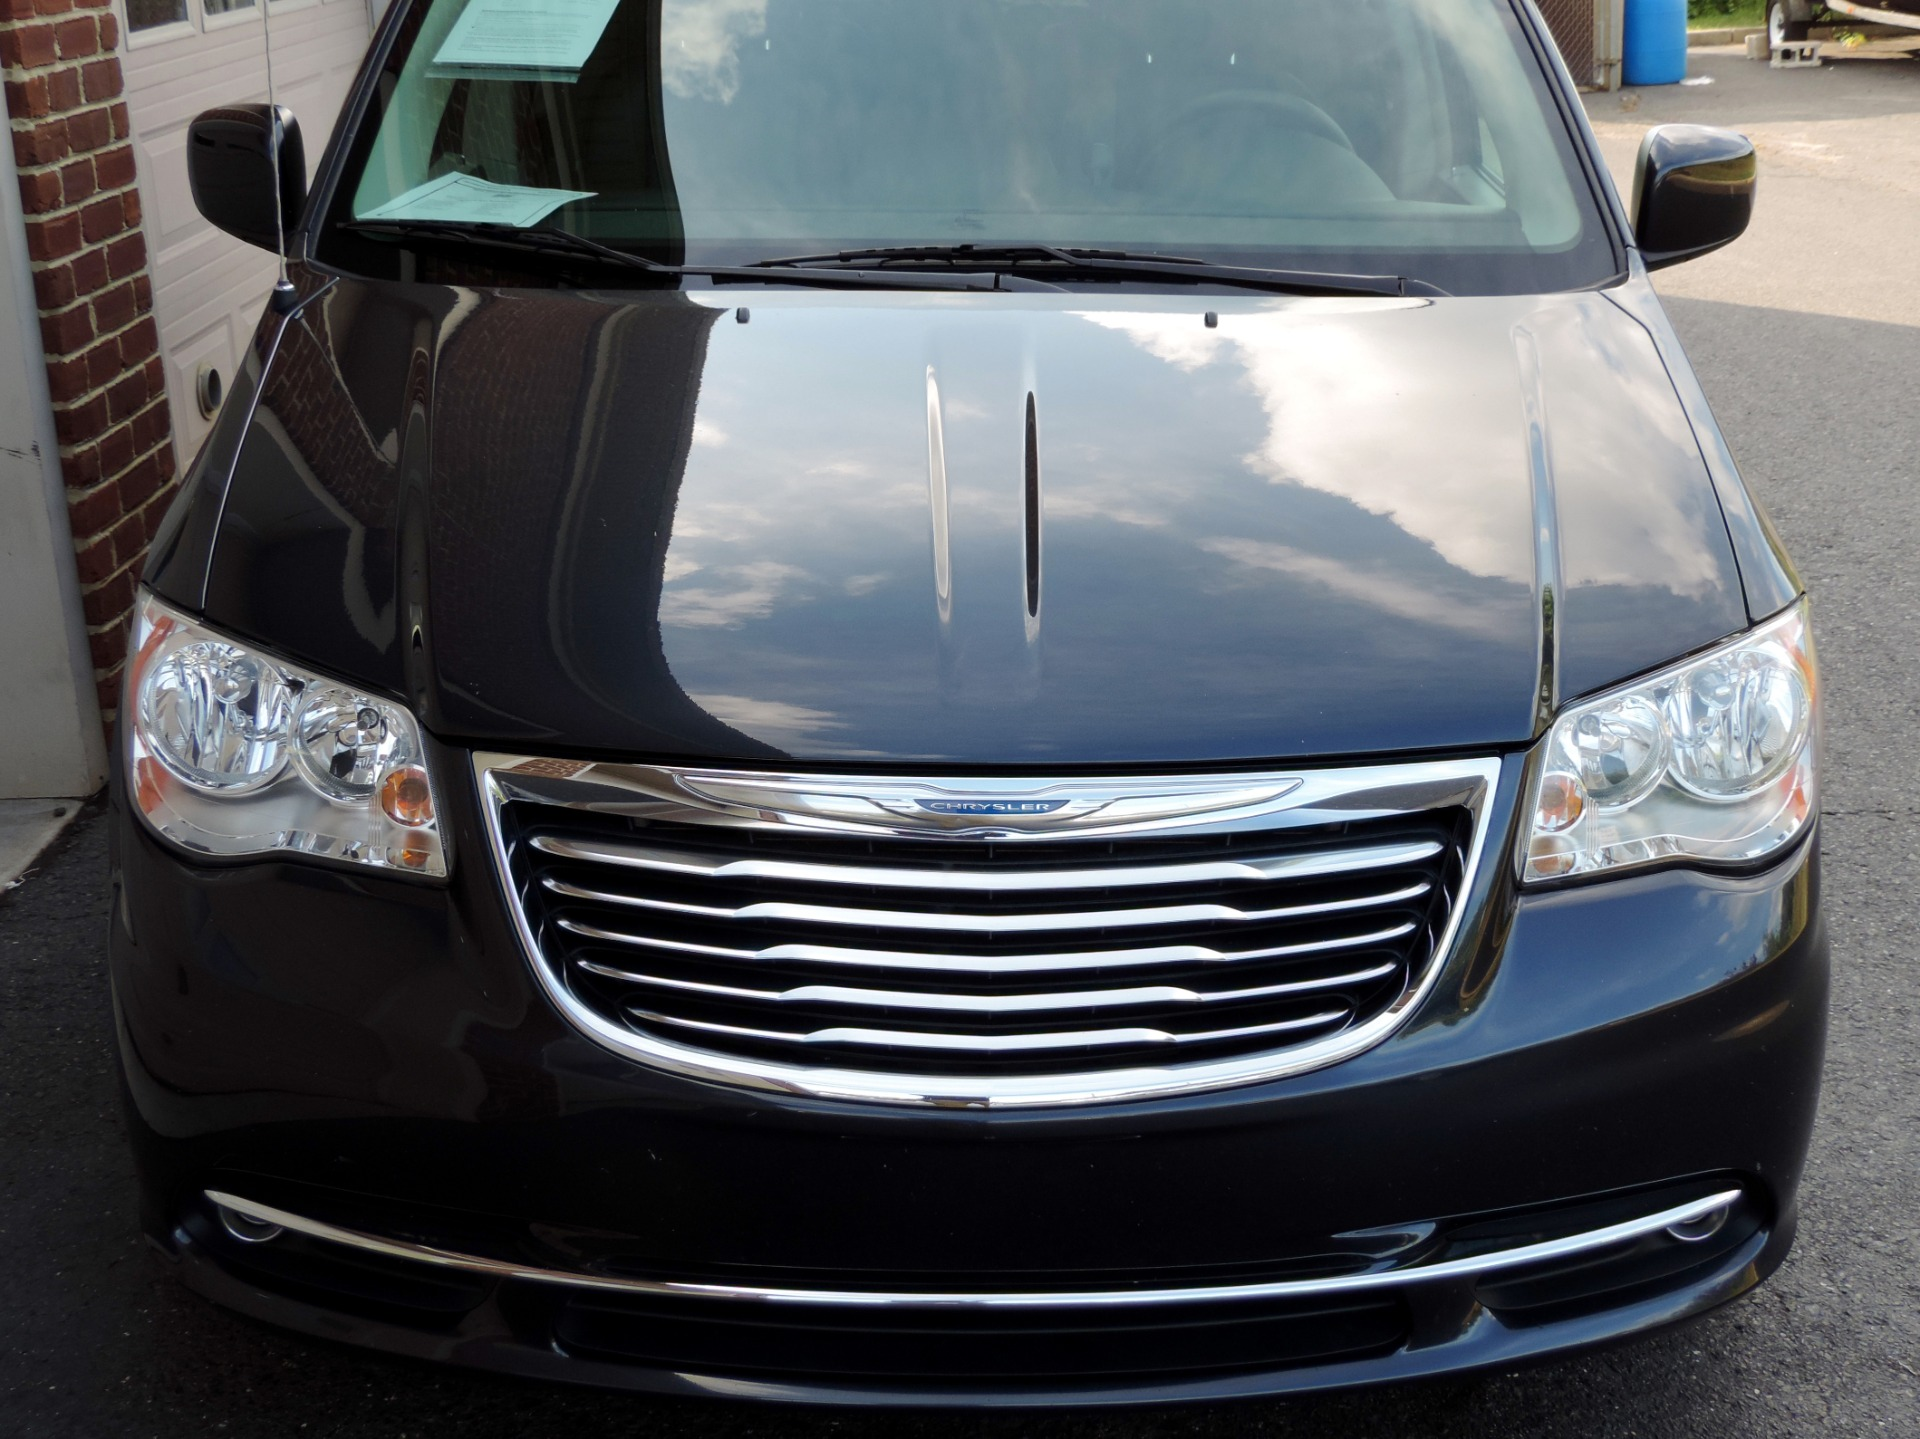 2014 chrysler town and country touring rear dvd leather 3rd row stock 229453 for sale. Black Bedroom Furniture Sets. Home Design Ideas